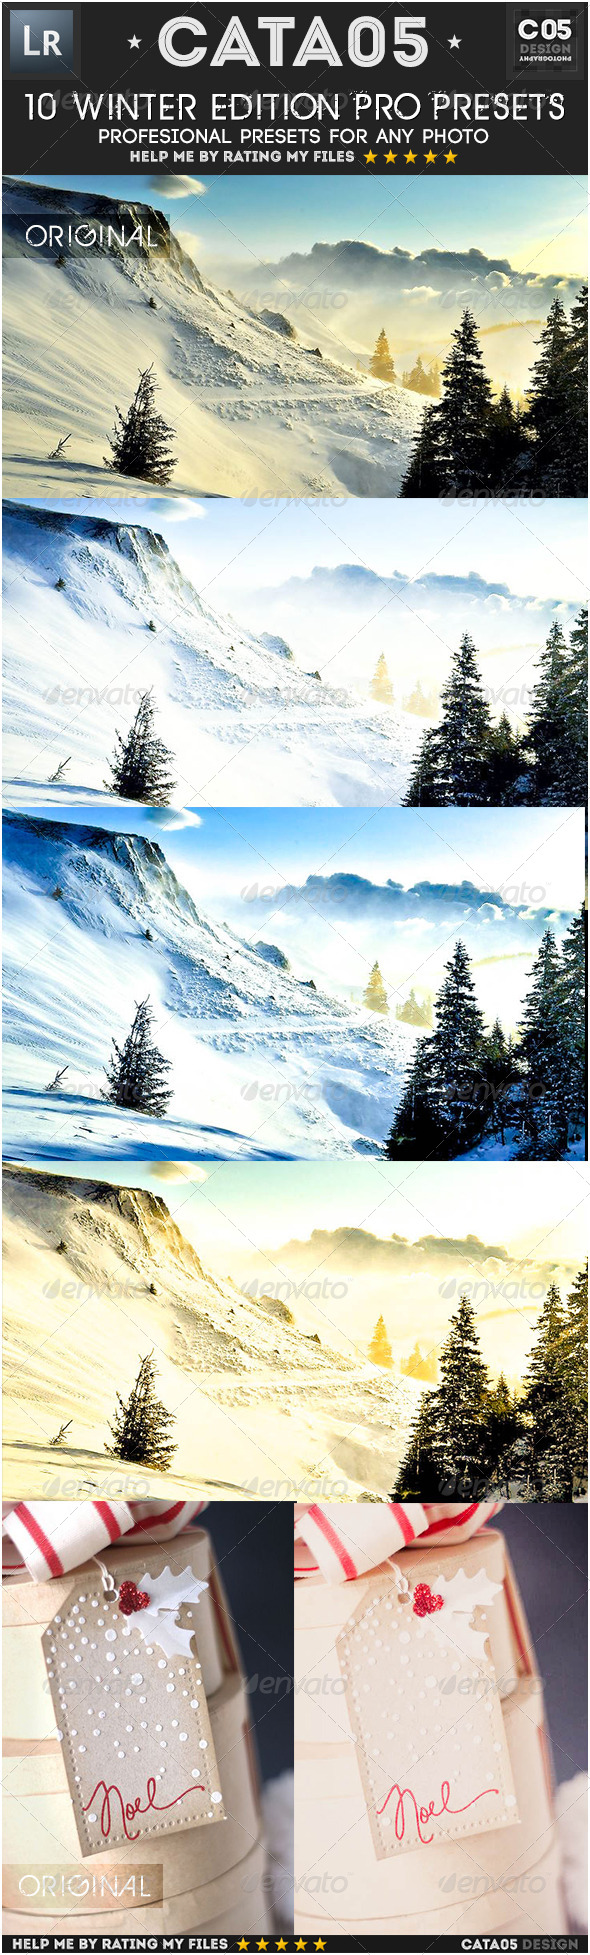 GraphicRiver 10 Winter Edition Pro Presets 6518768